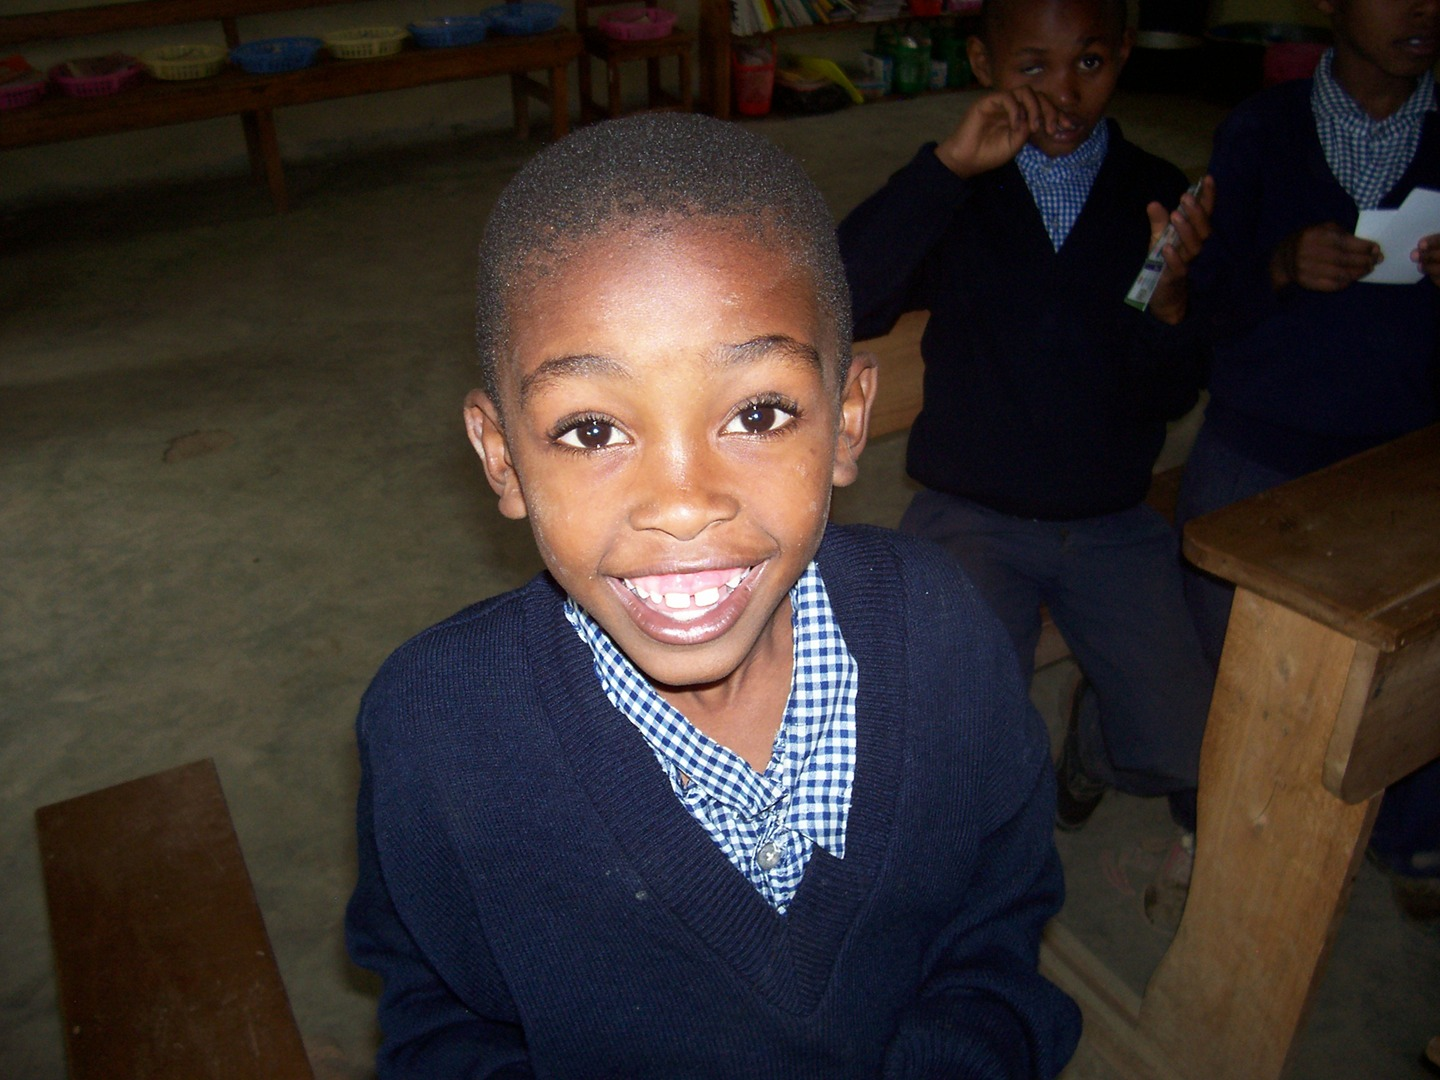 Our Mission - Shikabania seeks to change the lives of poor children in Nkoaranga village by giving them a solid foundation in English, enabling them to succeed in secondary school. With English from Shikabania, many of these children will have opportunities beyond subsistence farming. They need strong English skills to perform well in secondary school giving them a chance to obtain meaningful employment.Learn More